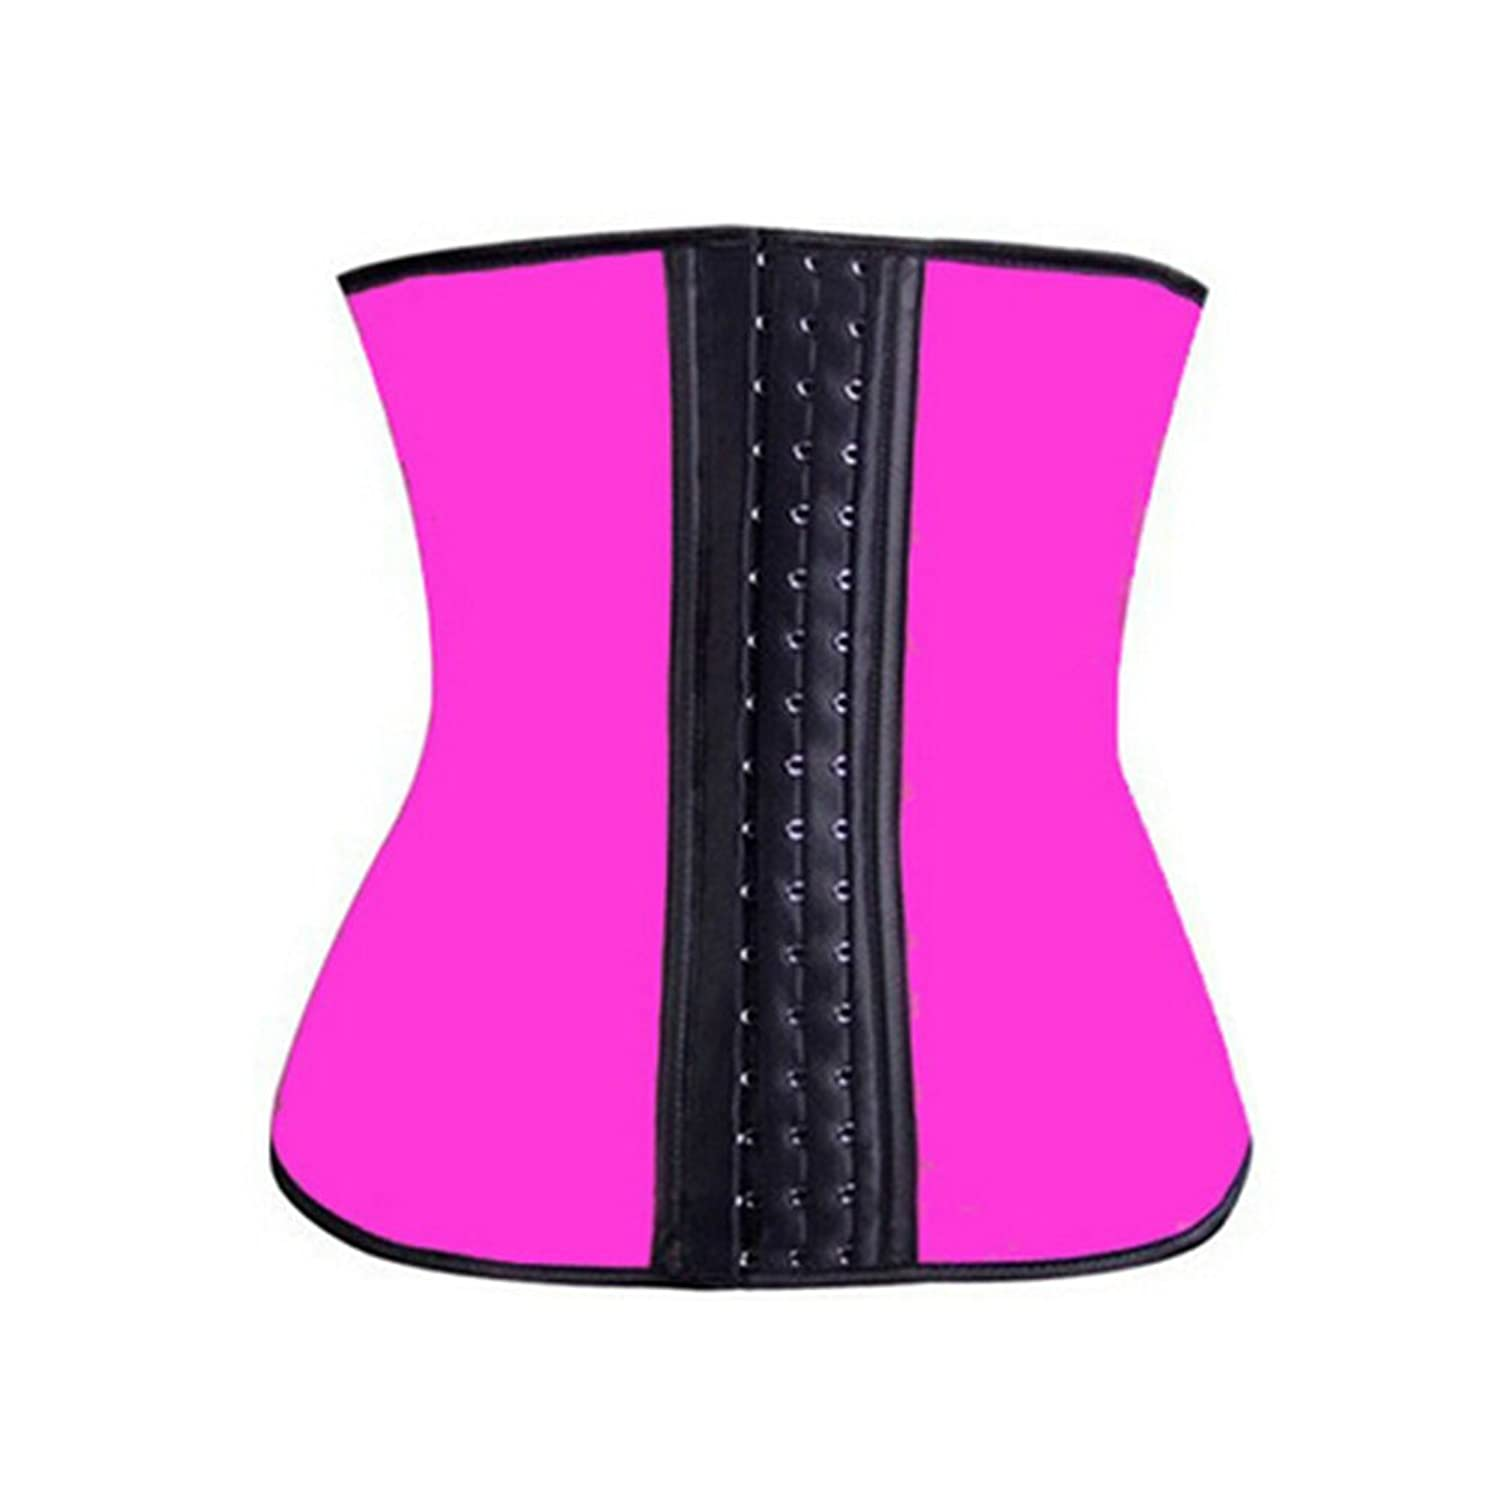 Teenloveme Women's Training Elastic Waist Trainer Cincher Shapewear Lace Corset Underbust Belt,UK6-24 (XL, 1502Rose Red)